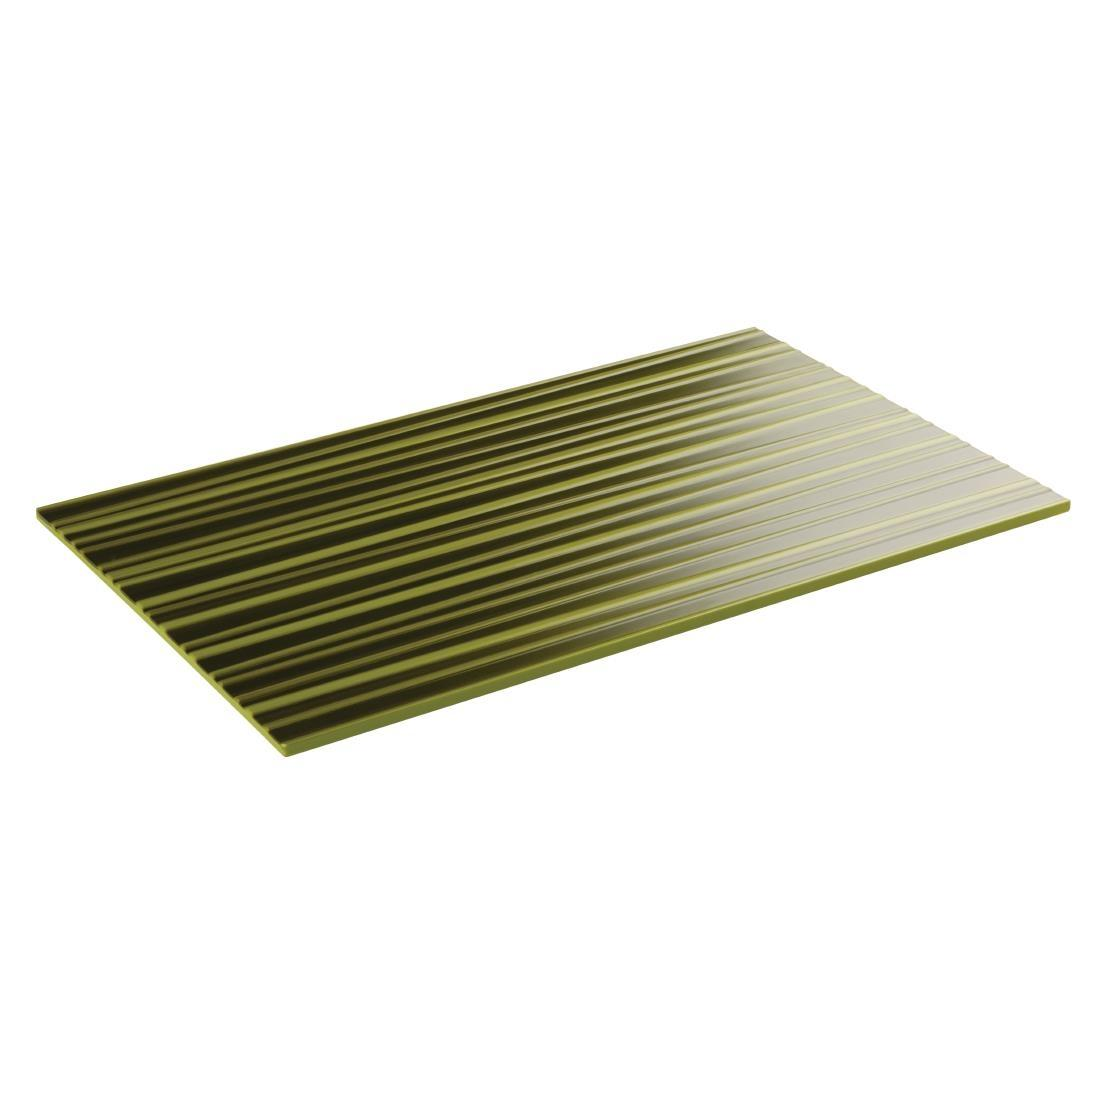 DT762 - APS Asia+ Bamboo Leaf Tray GN 2/4 - Each - DT762